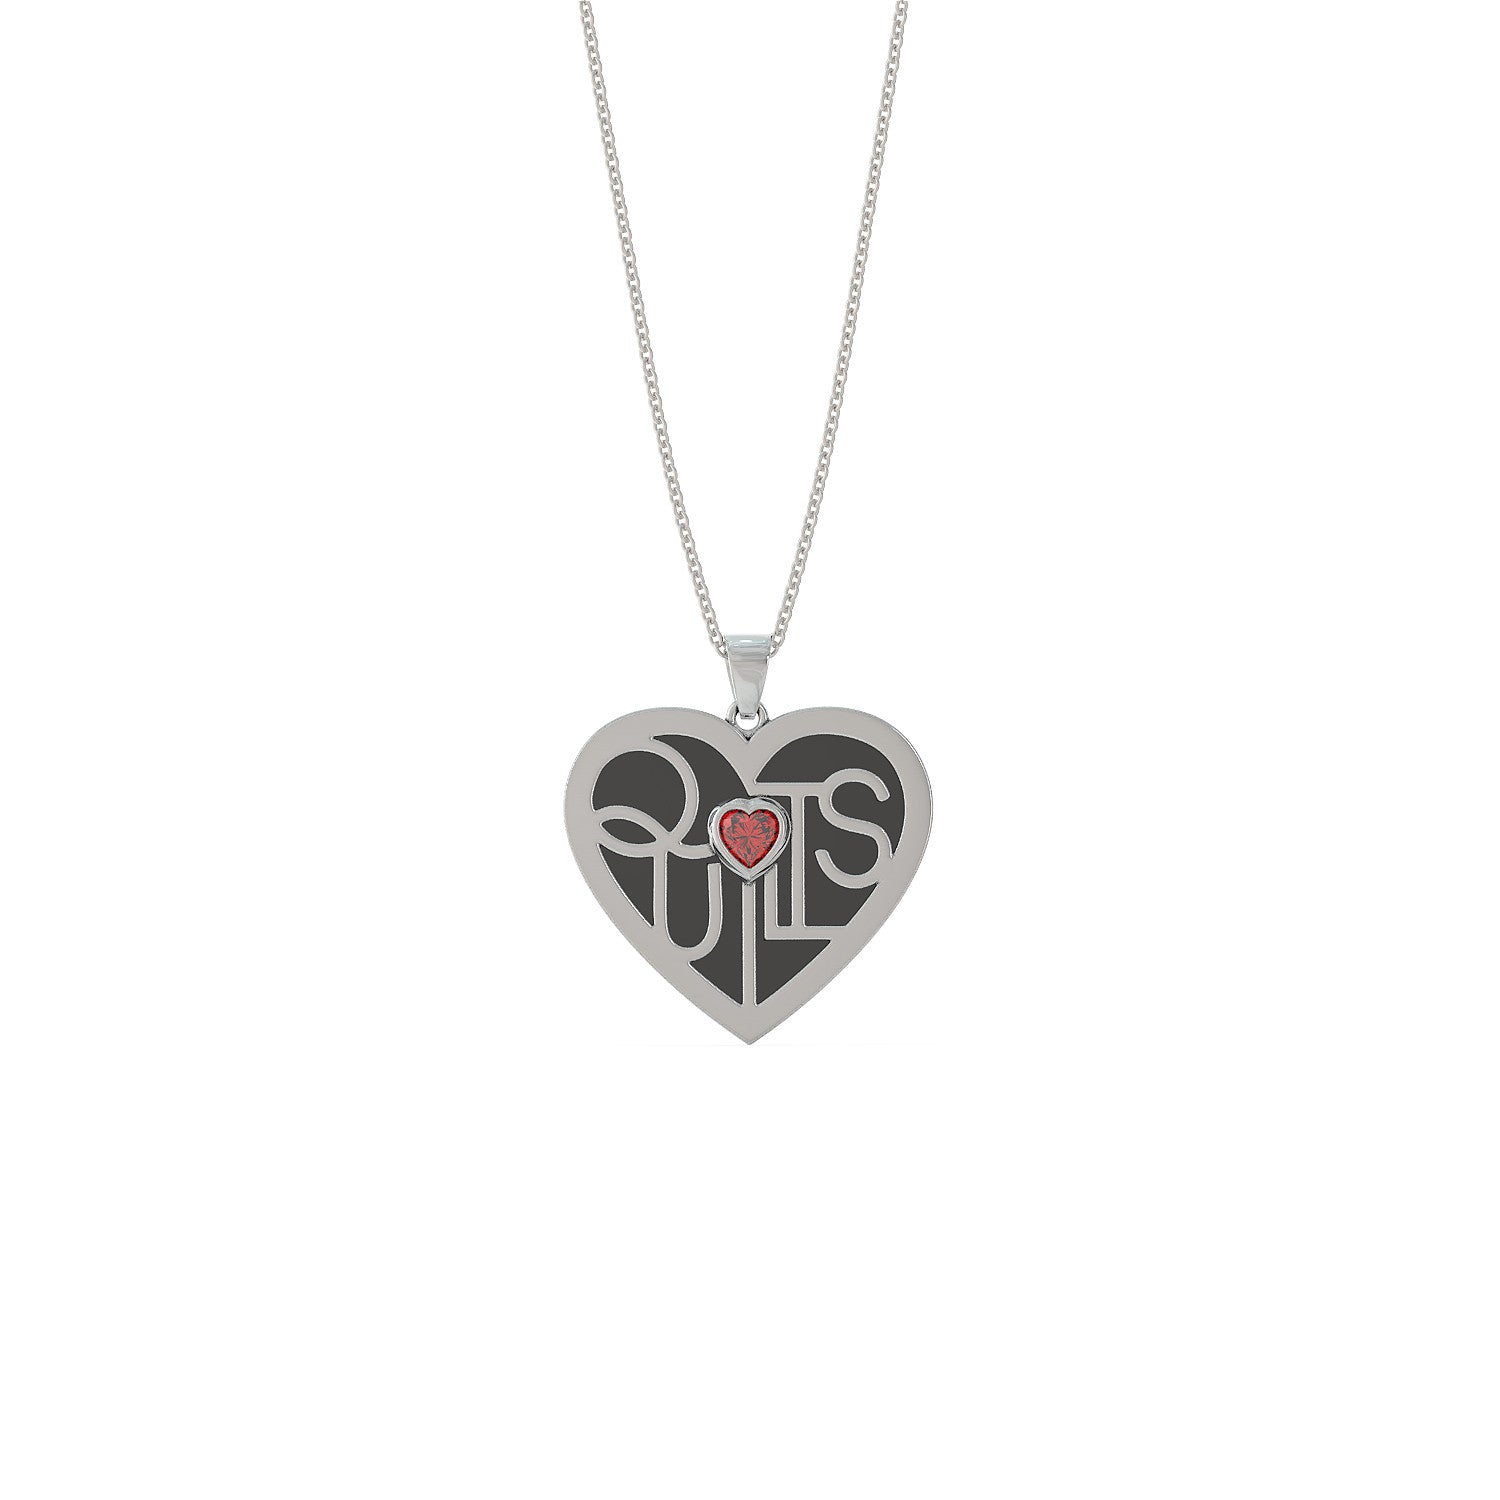 Quilt Lover's Heart Necklace